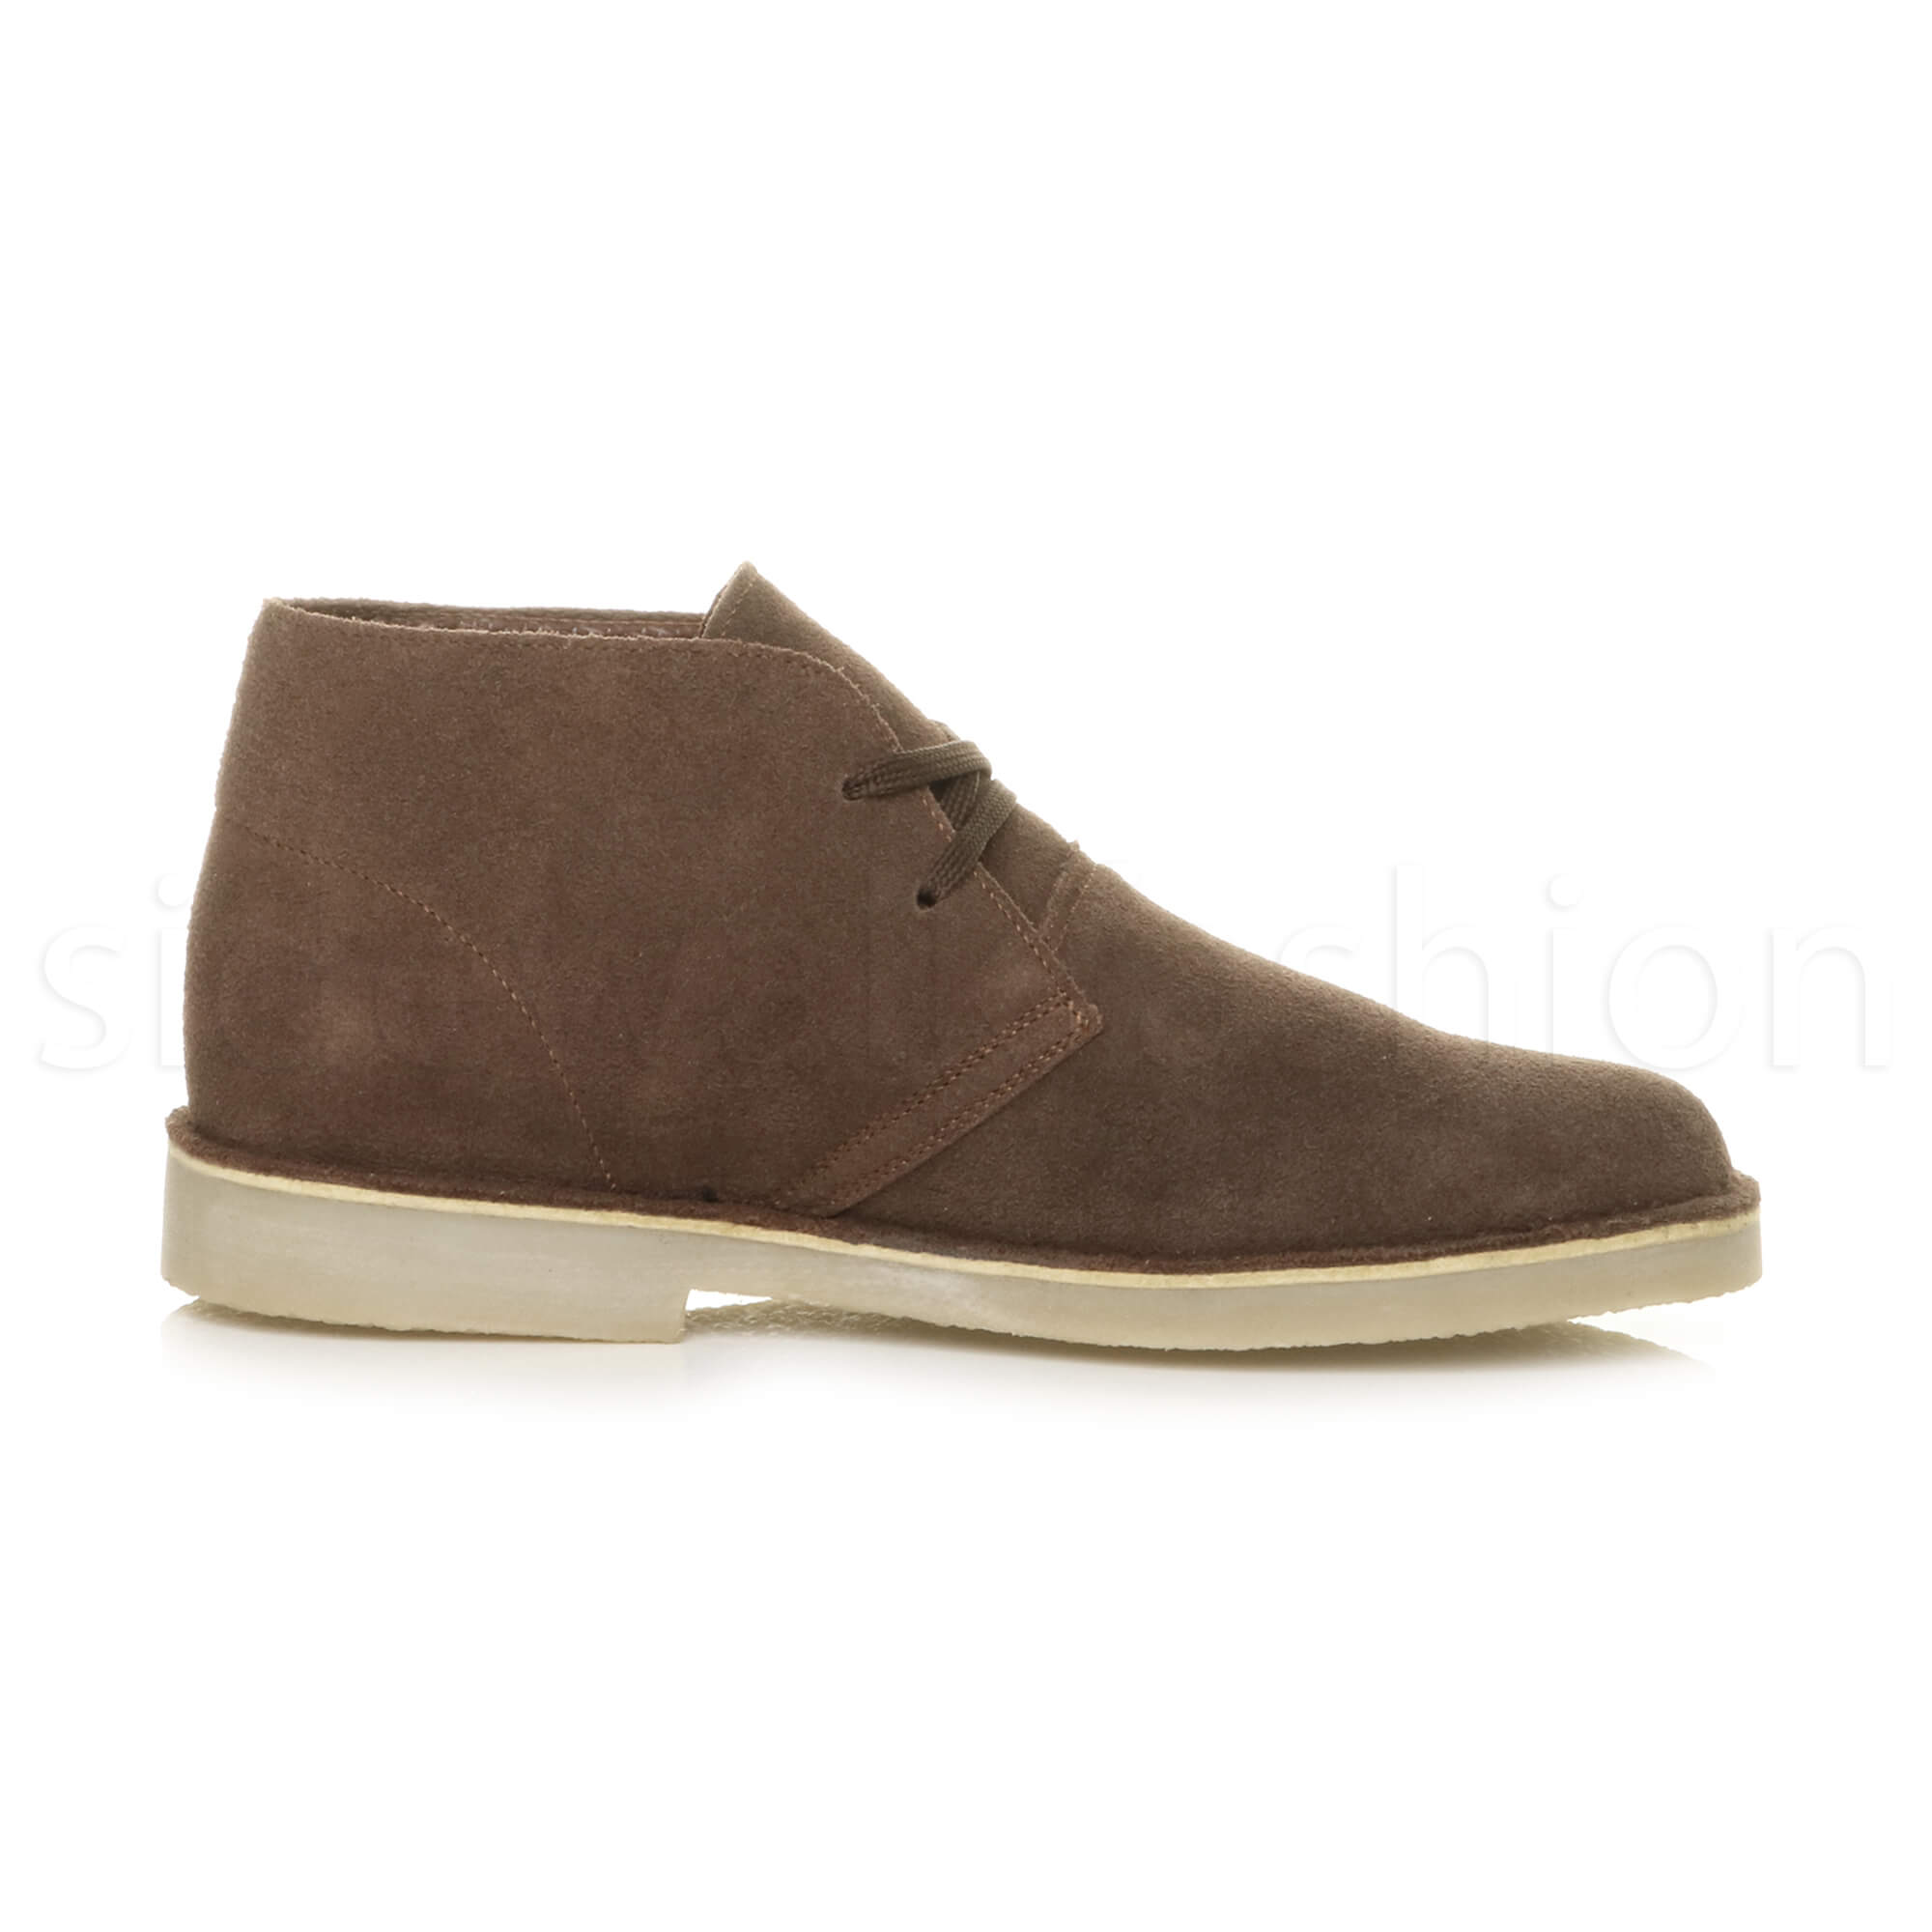 Mens-lace-up-rubber-sole-suede-ankle-chukka-desert-boots-classic-shoes-size thumbnail 11